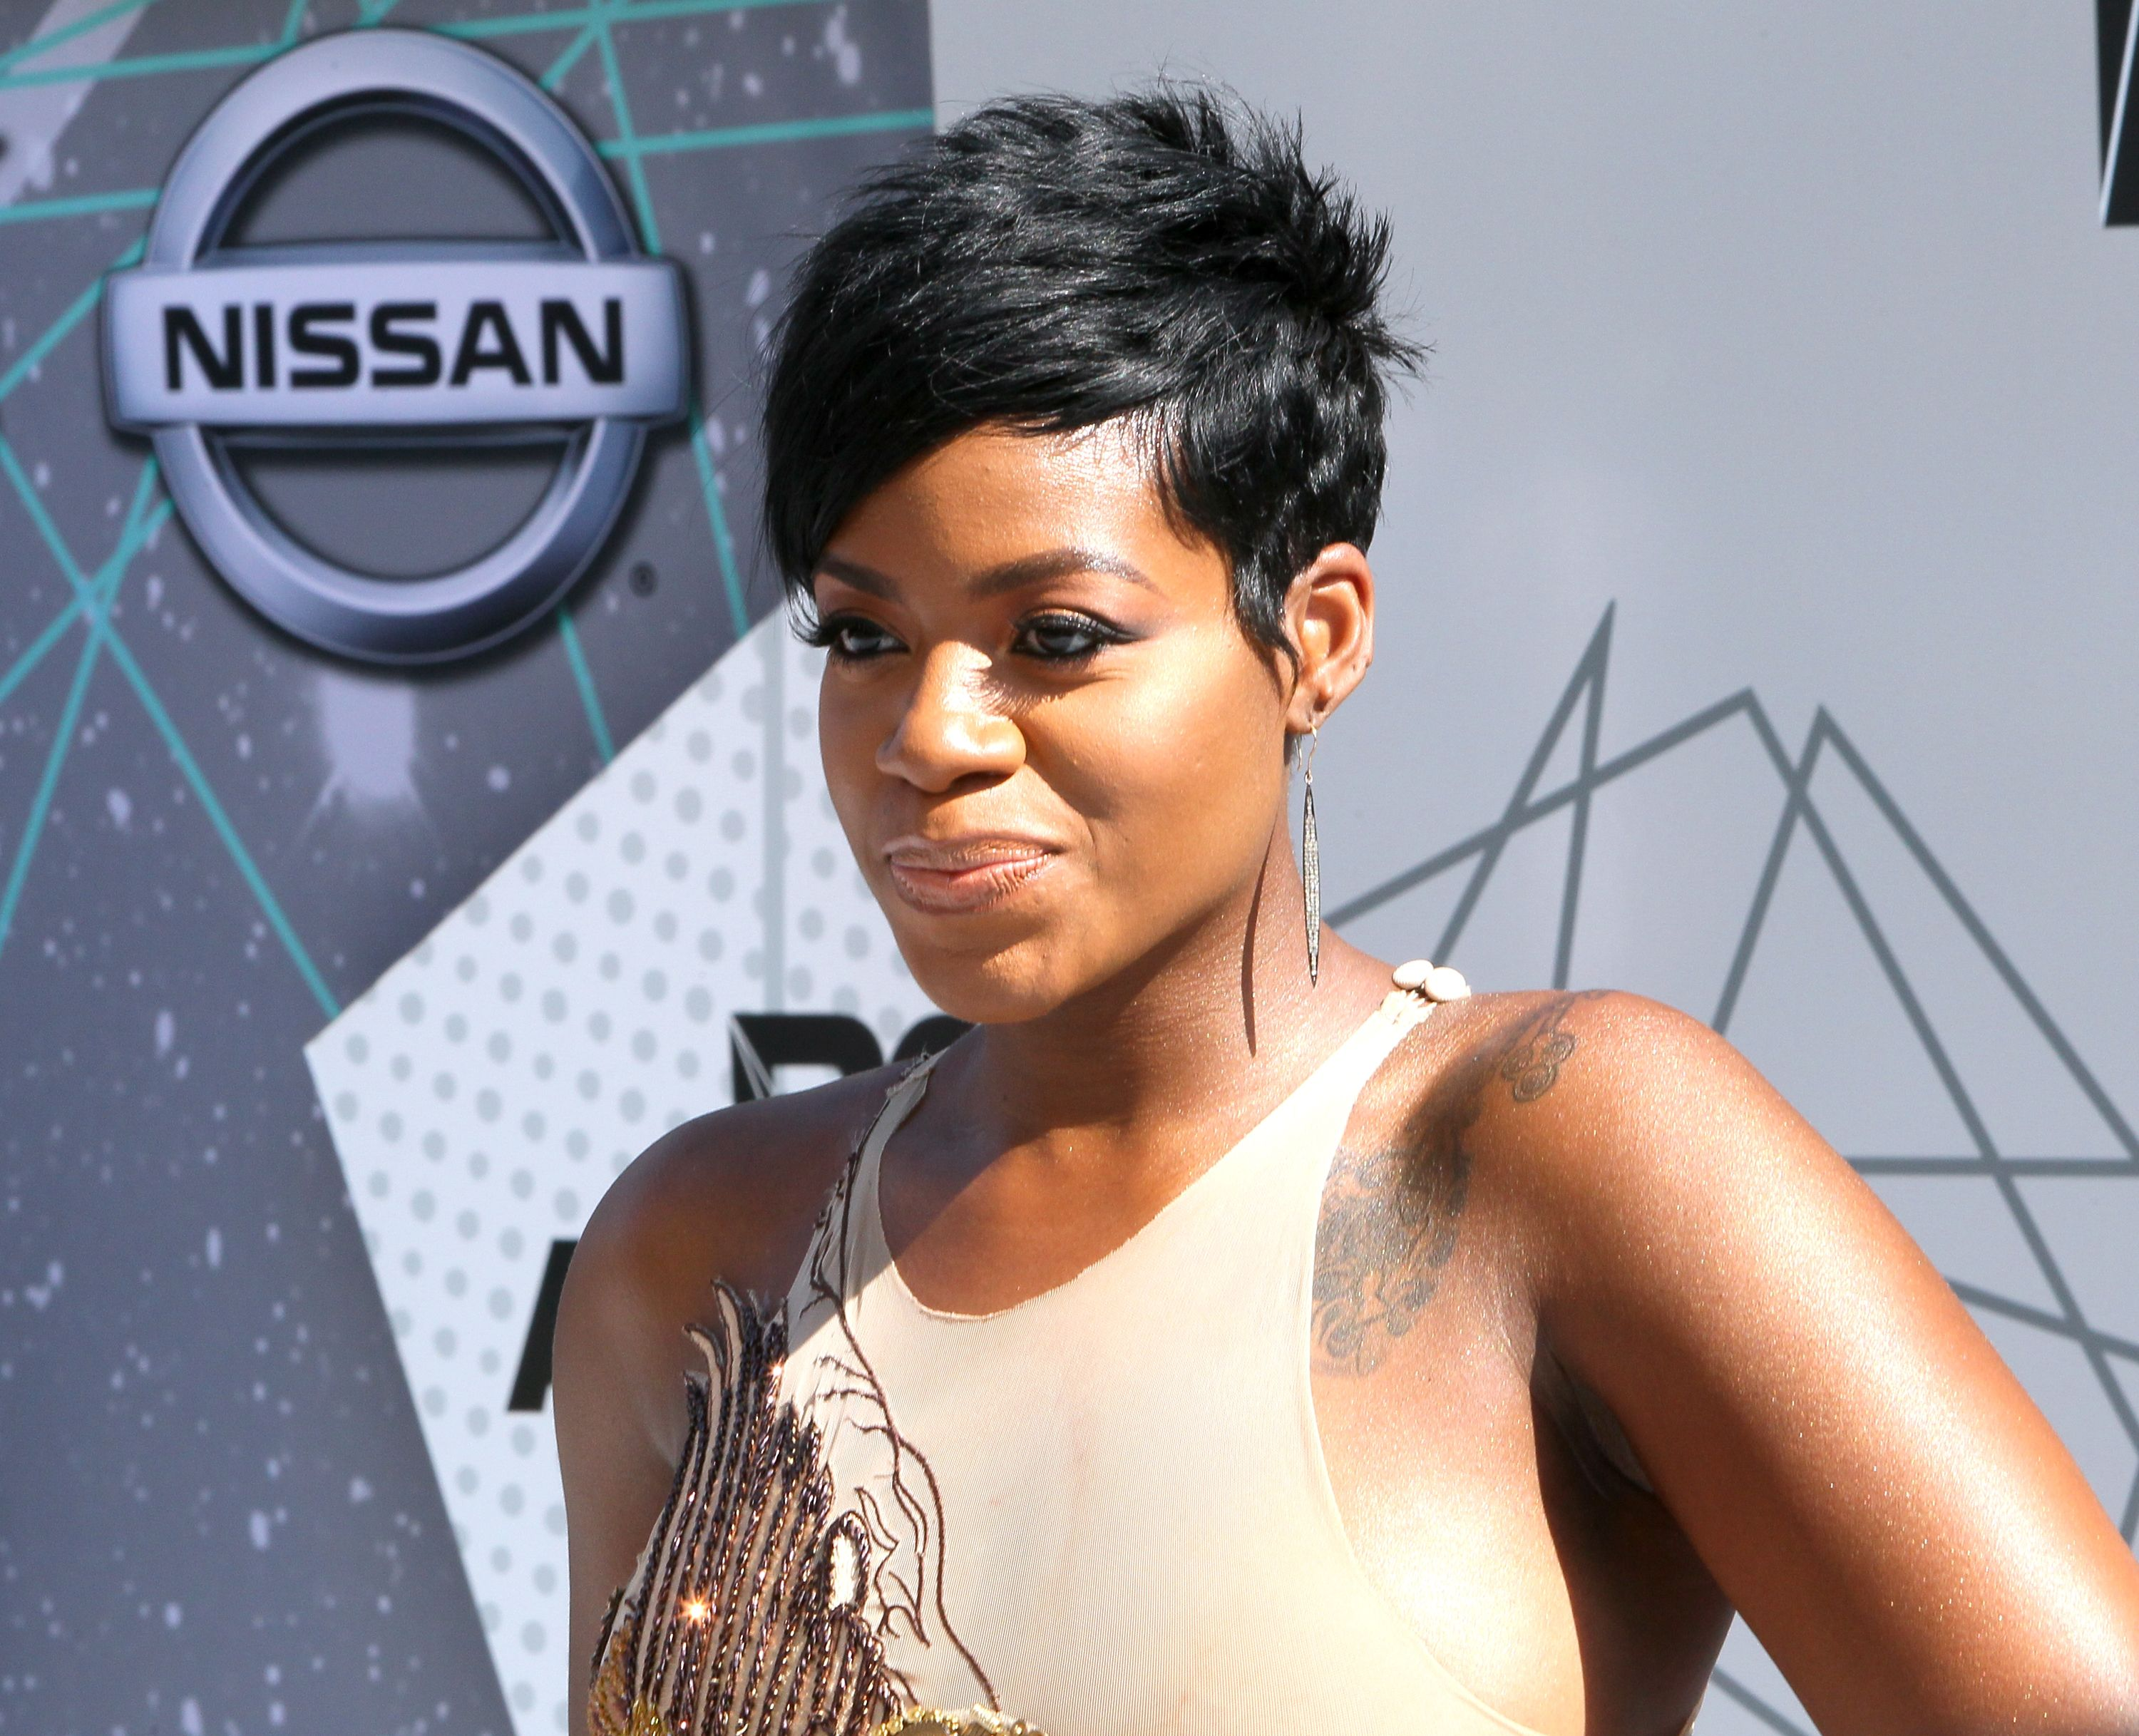 Fantasia Barrino at the BET Awards on June 26, 2016 in Los Angeles. │Photo: Getty Images